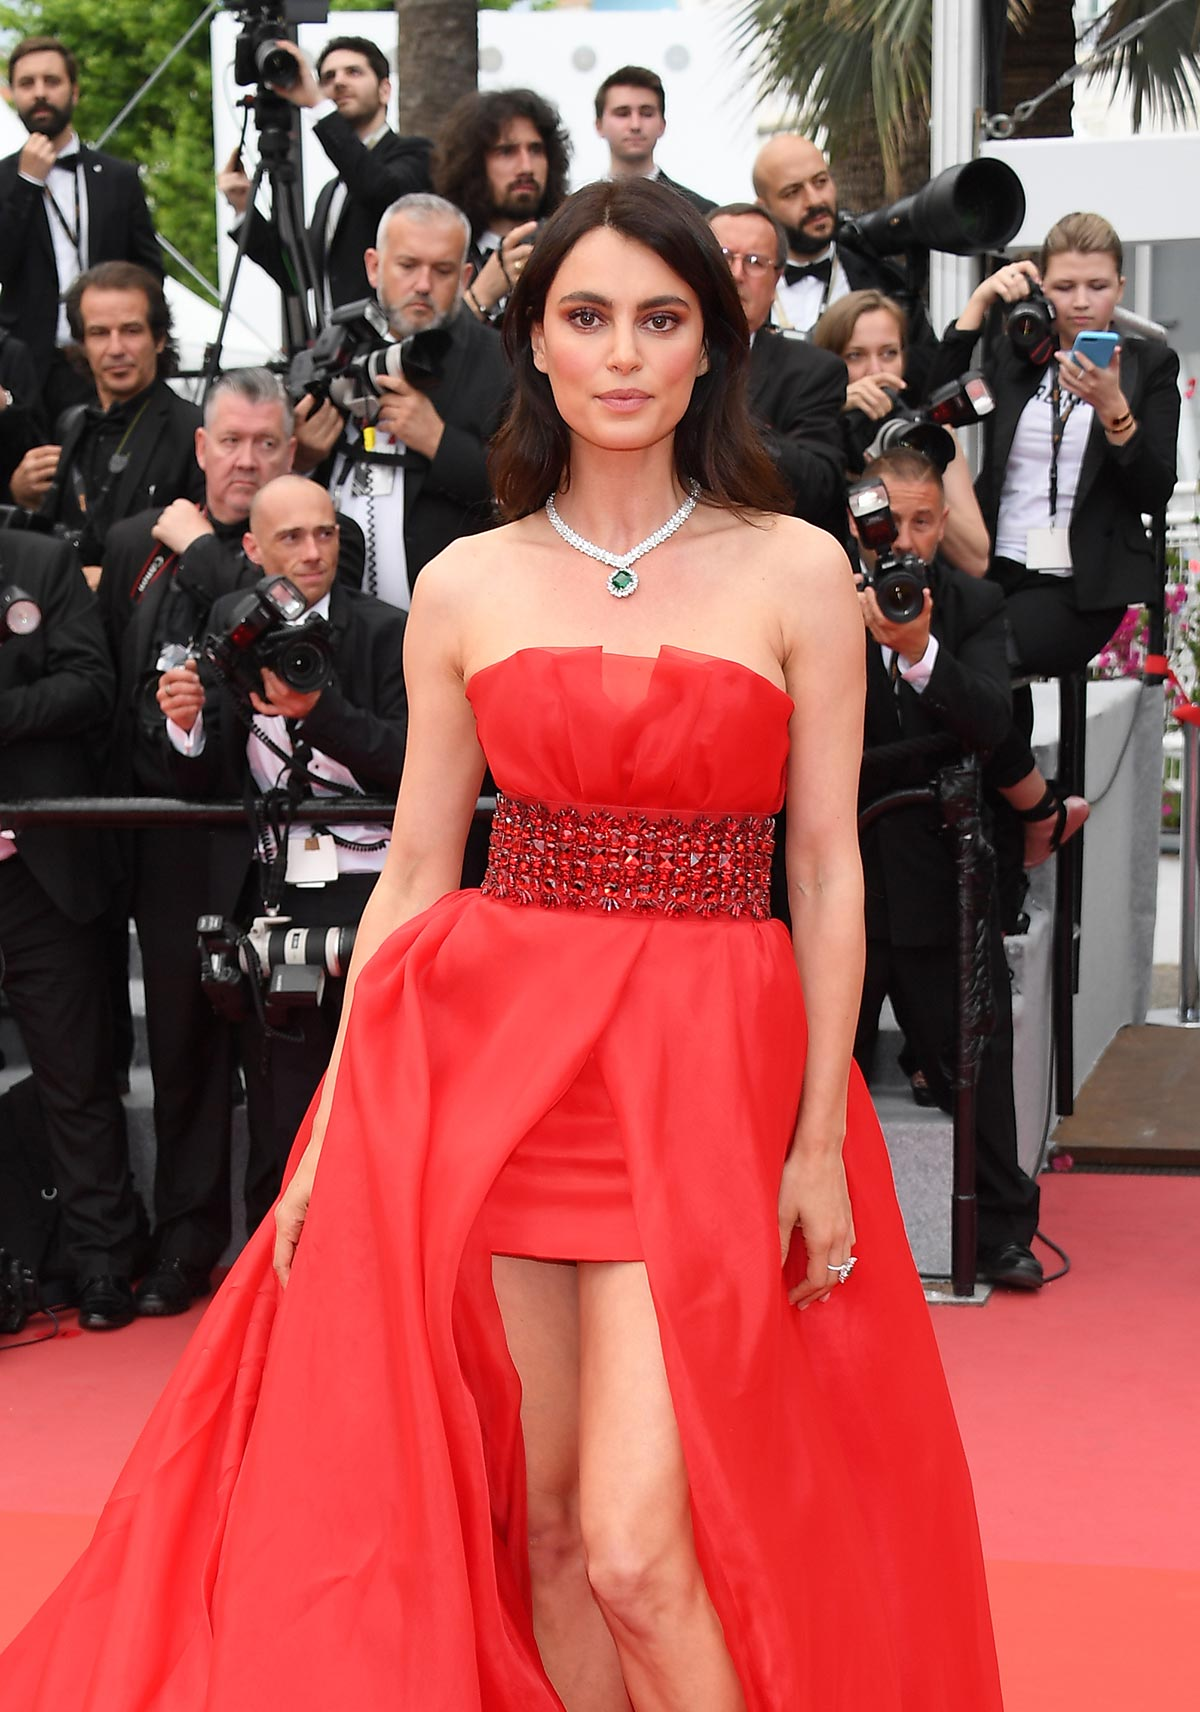 Cannes 2018 - Red carpet - Catrinel Marlon - Hair and makeup Massimo Serini